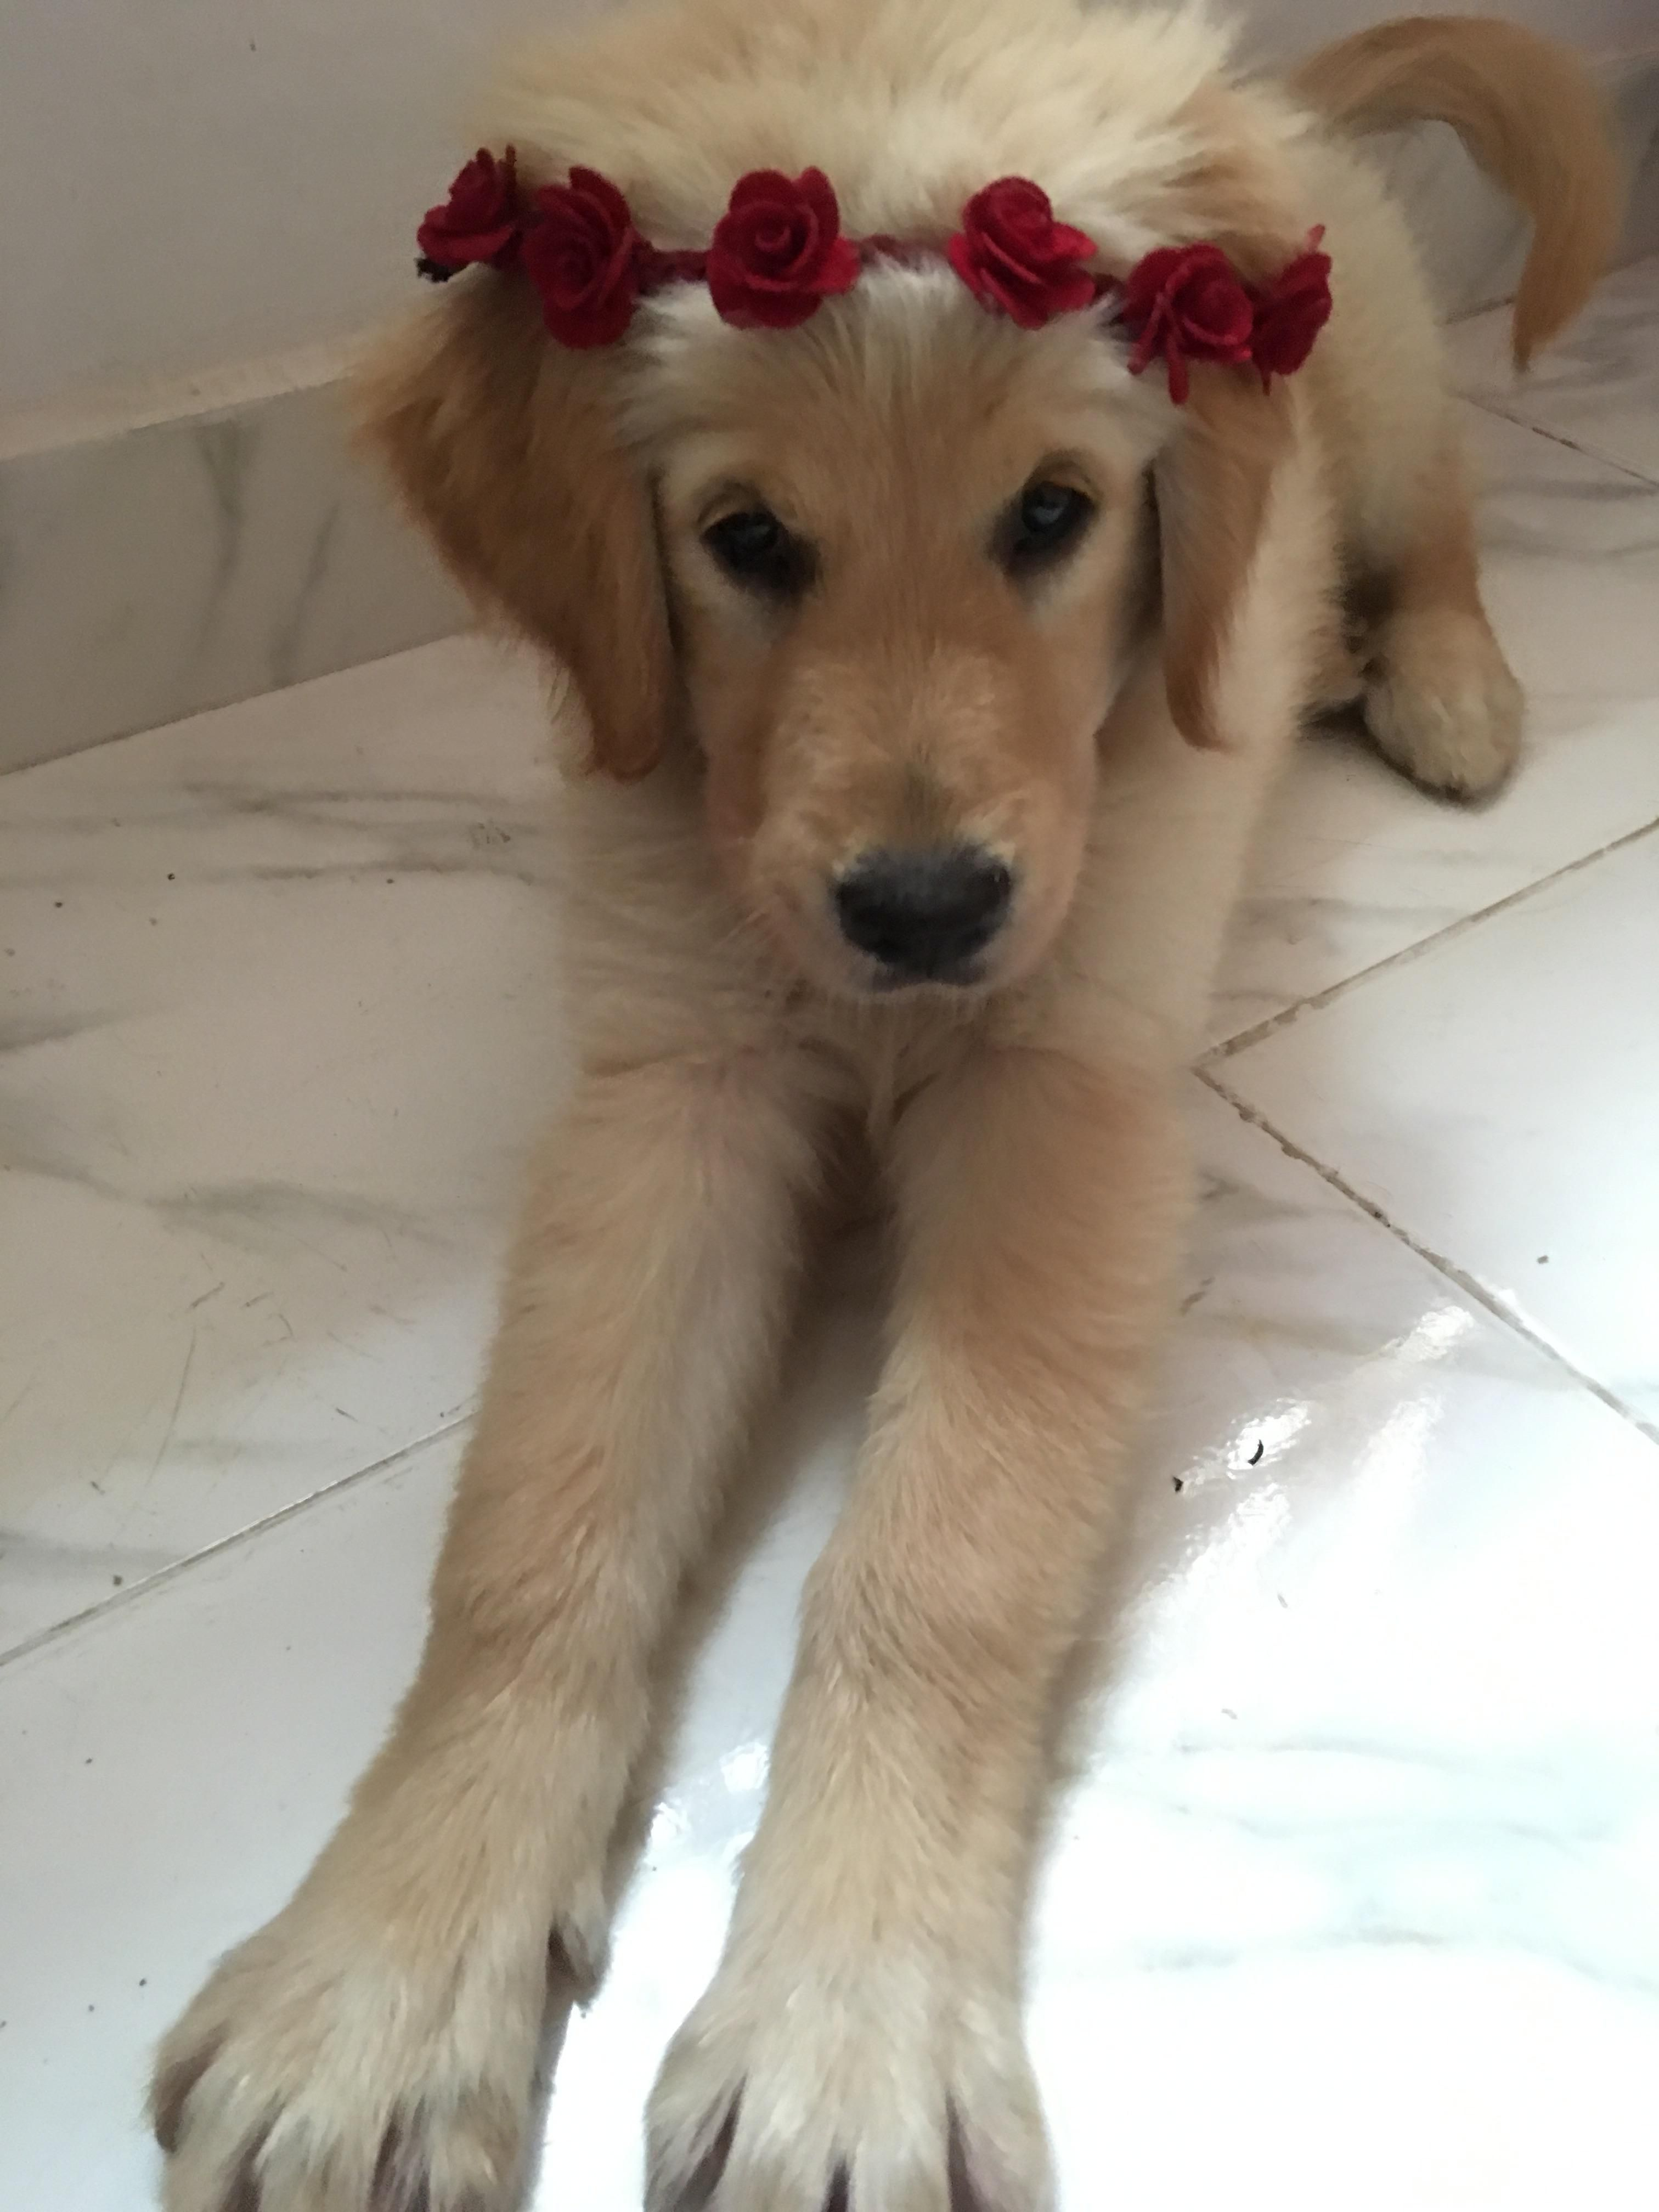 My Baby At About 5 Months Old Goldenretrievers Dogs Golden